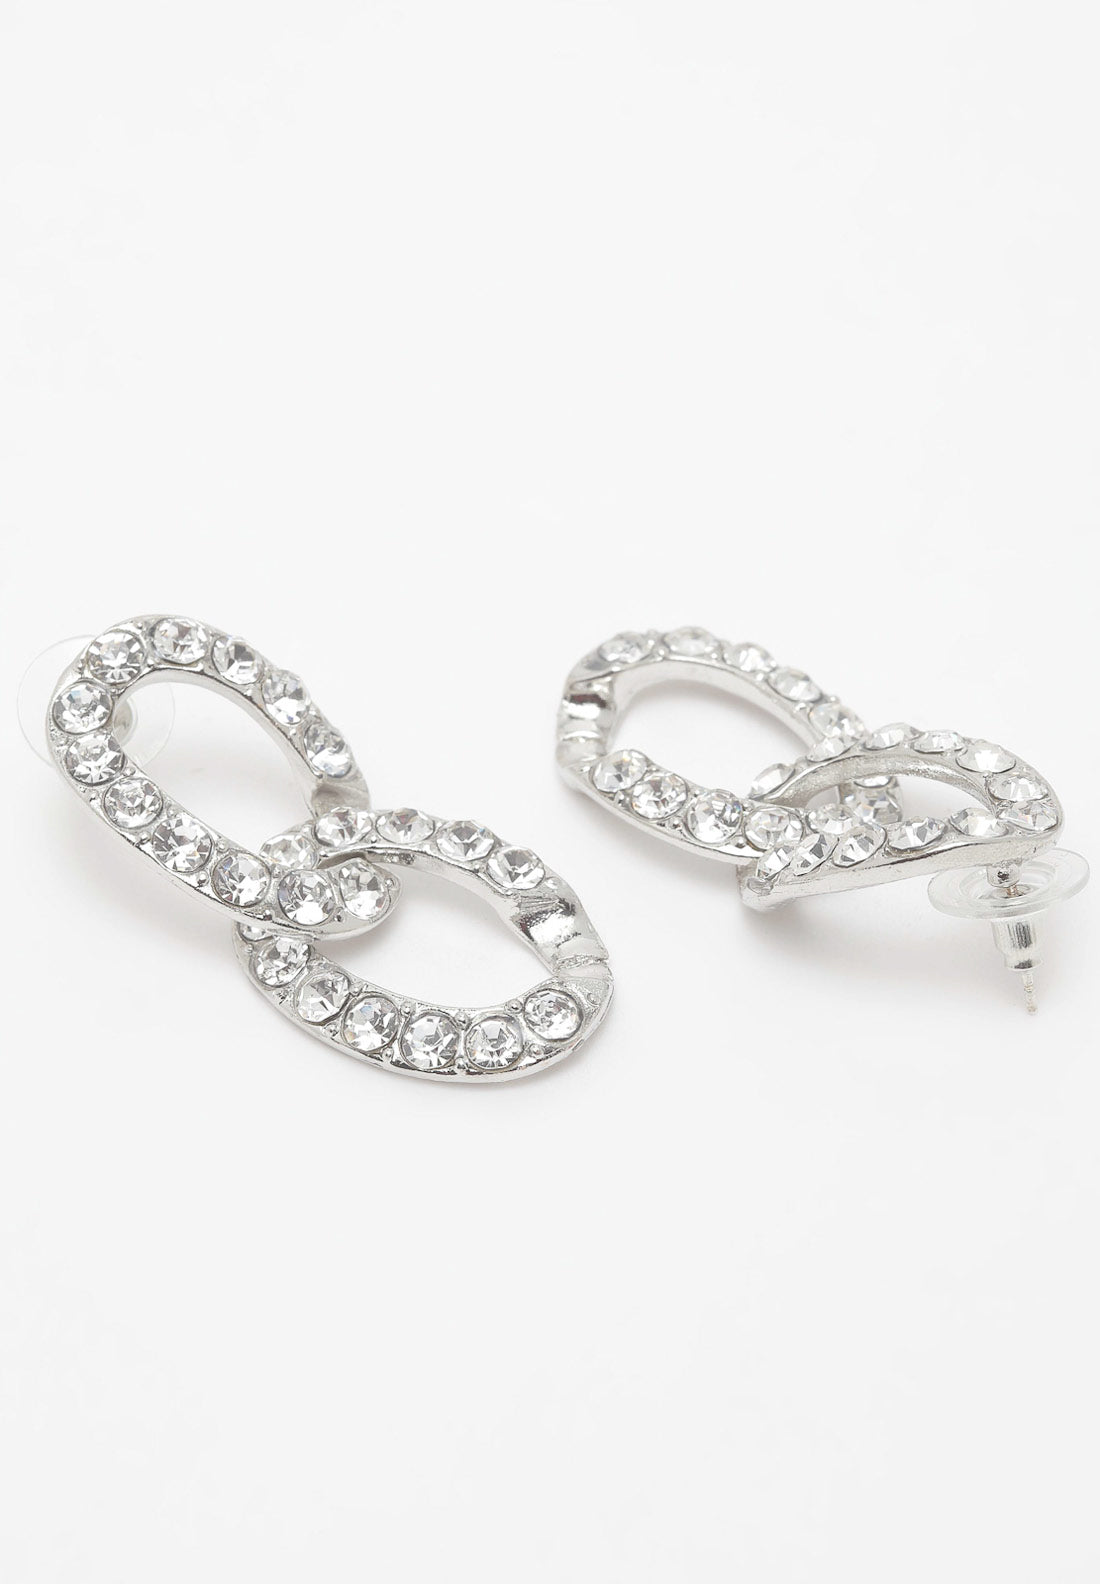 Avant-Garde Paris Silver Round Crystal Hanging Earrings